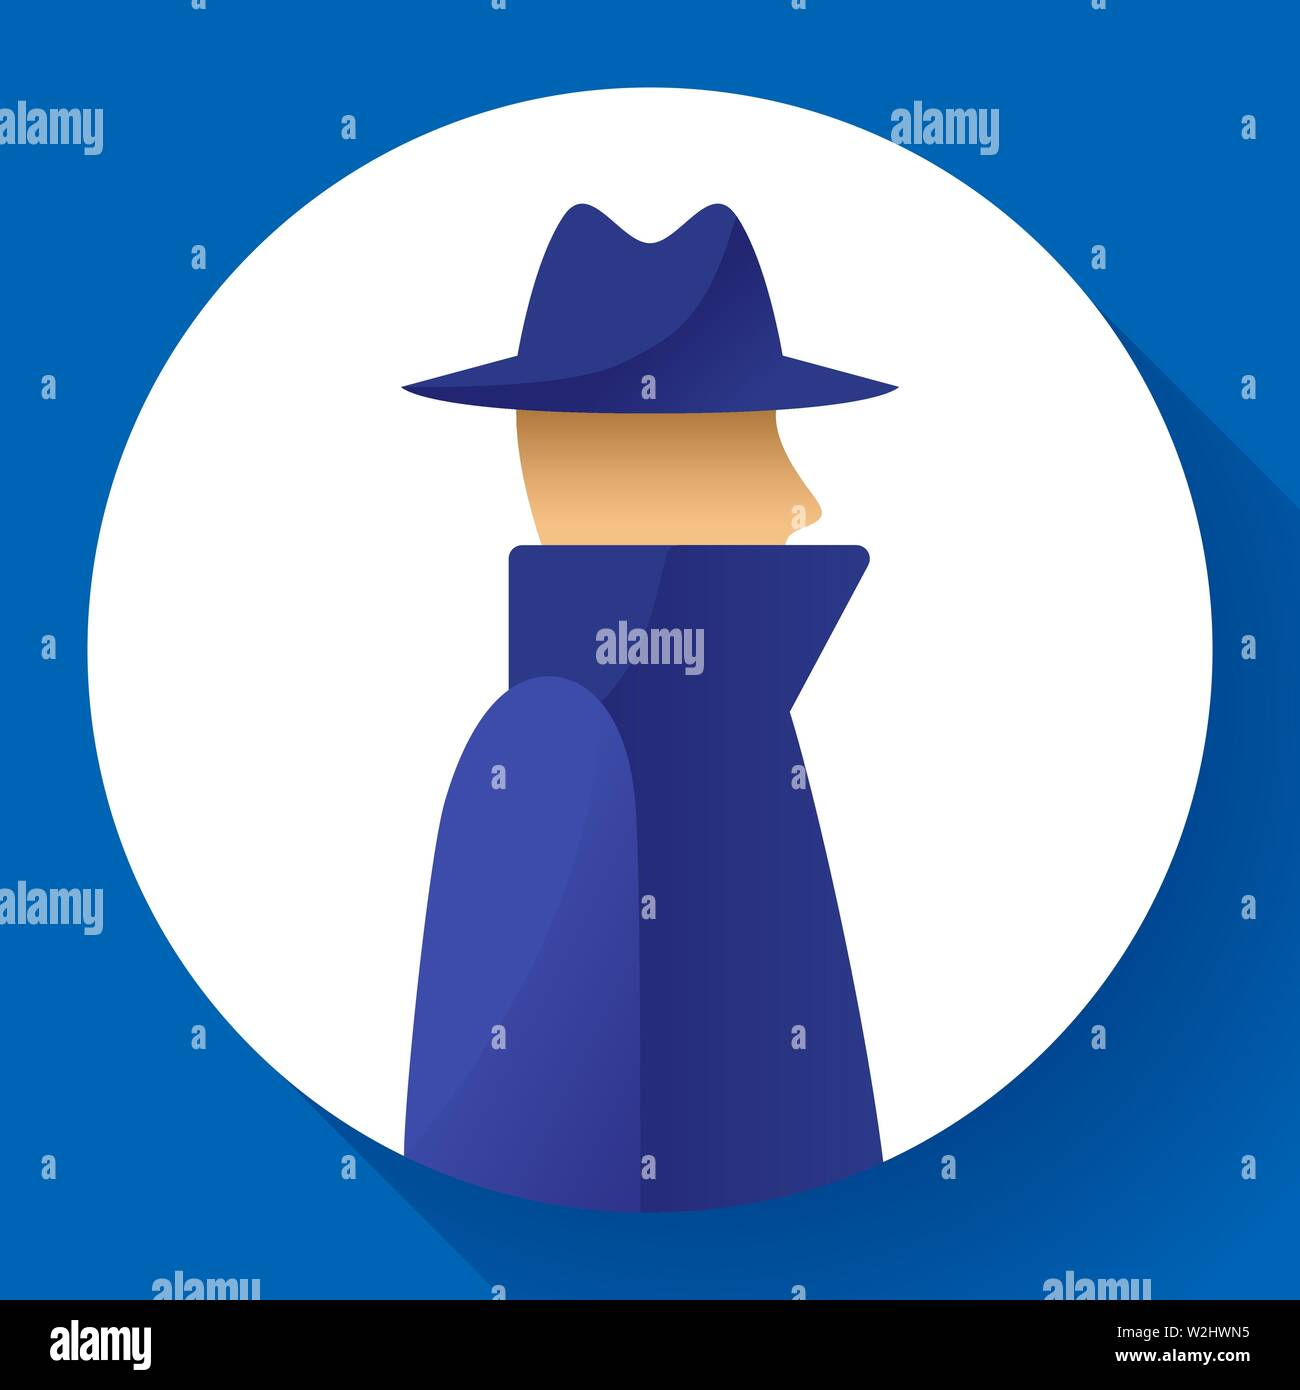 Anonymity concept, spy, detective, agent, anonym in coat and hat icon, anonymous, vector illustration. - Stock Vector